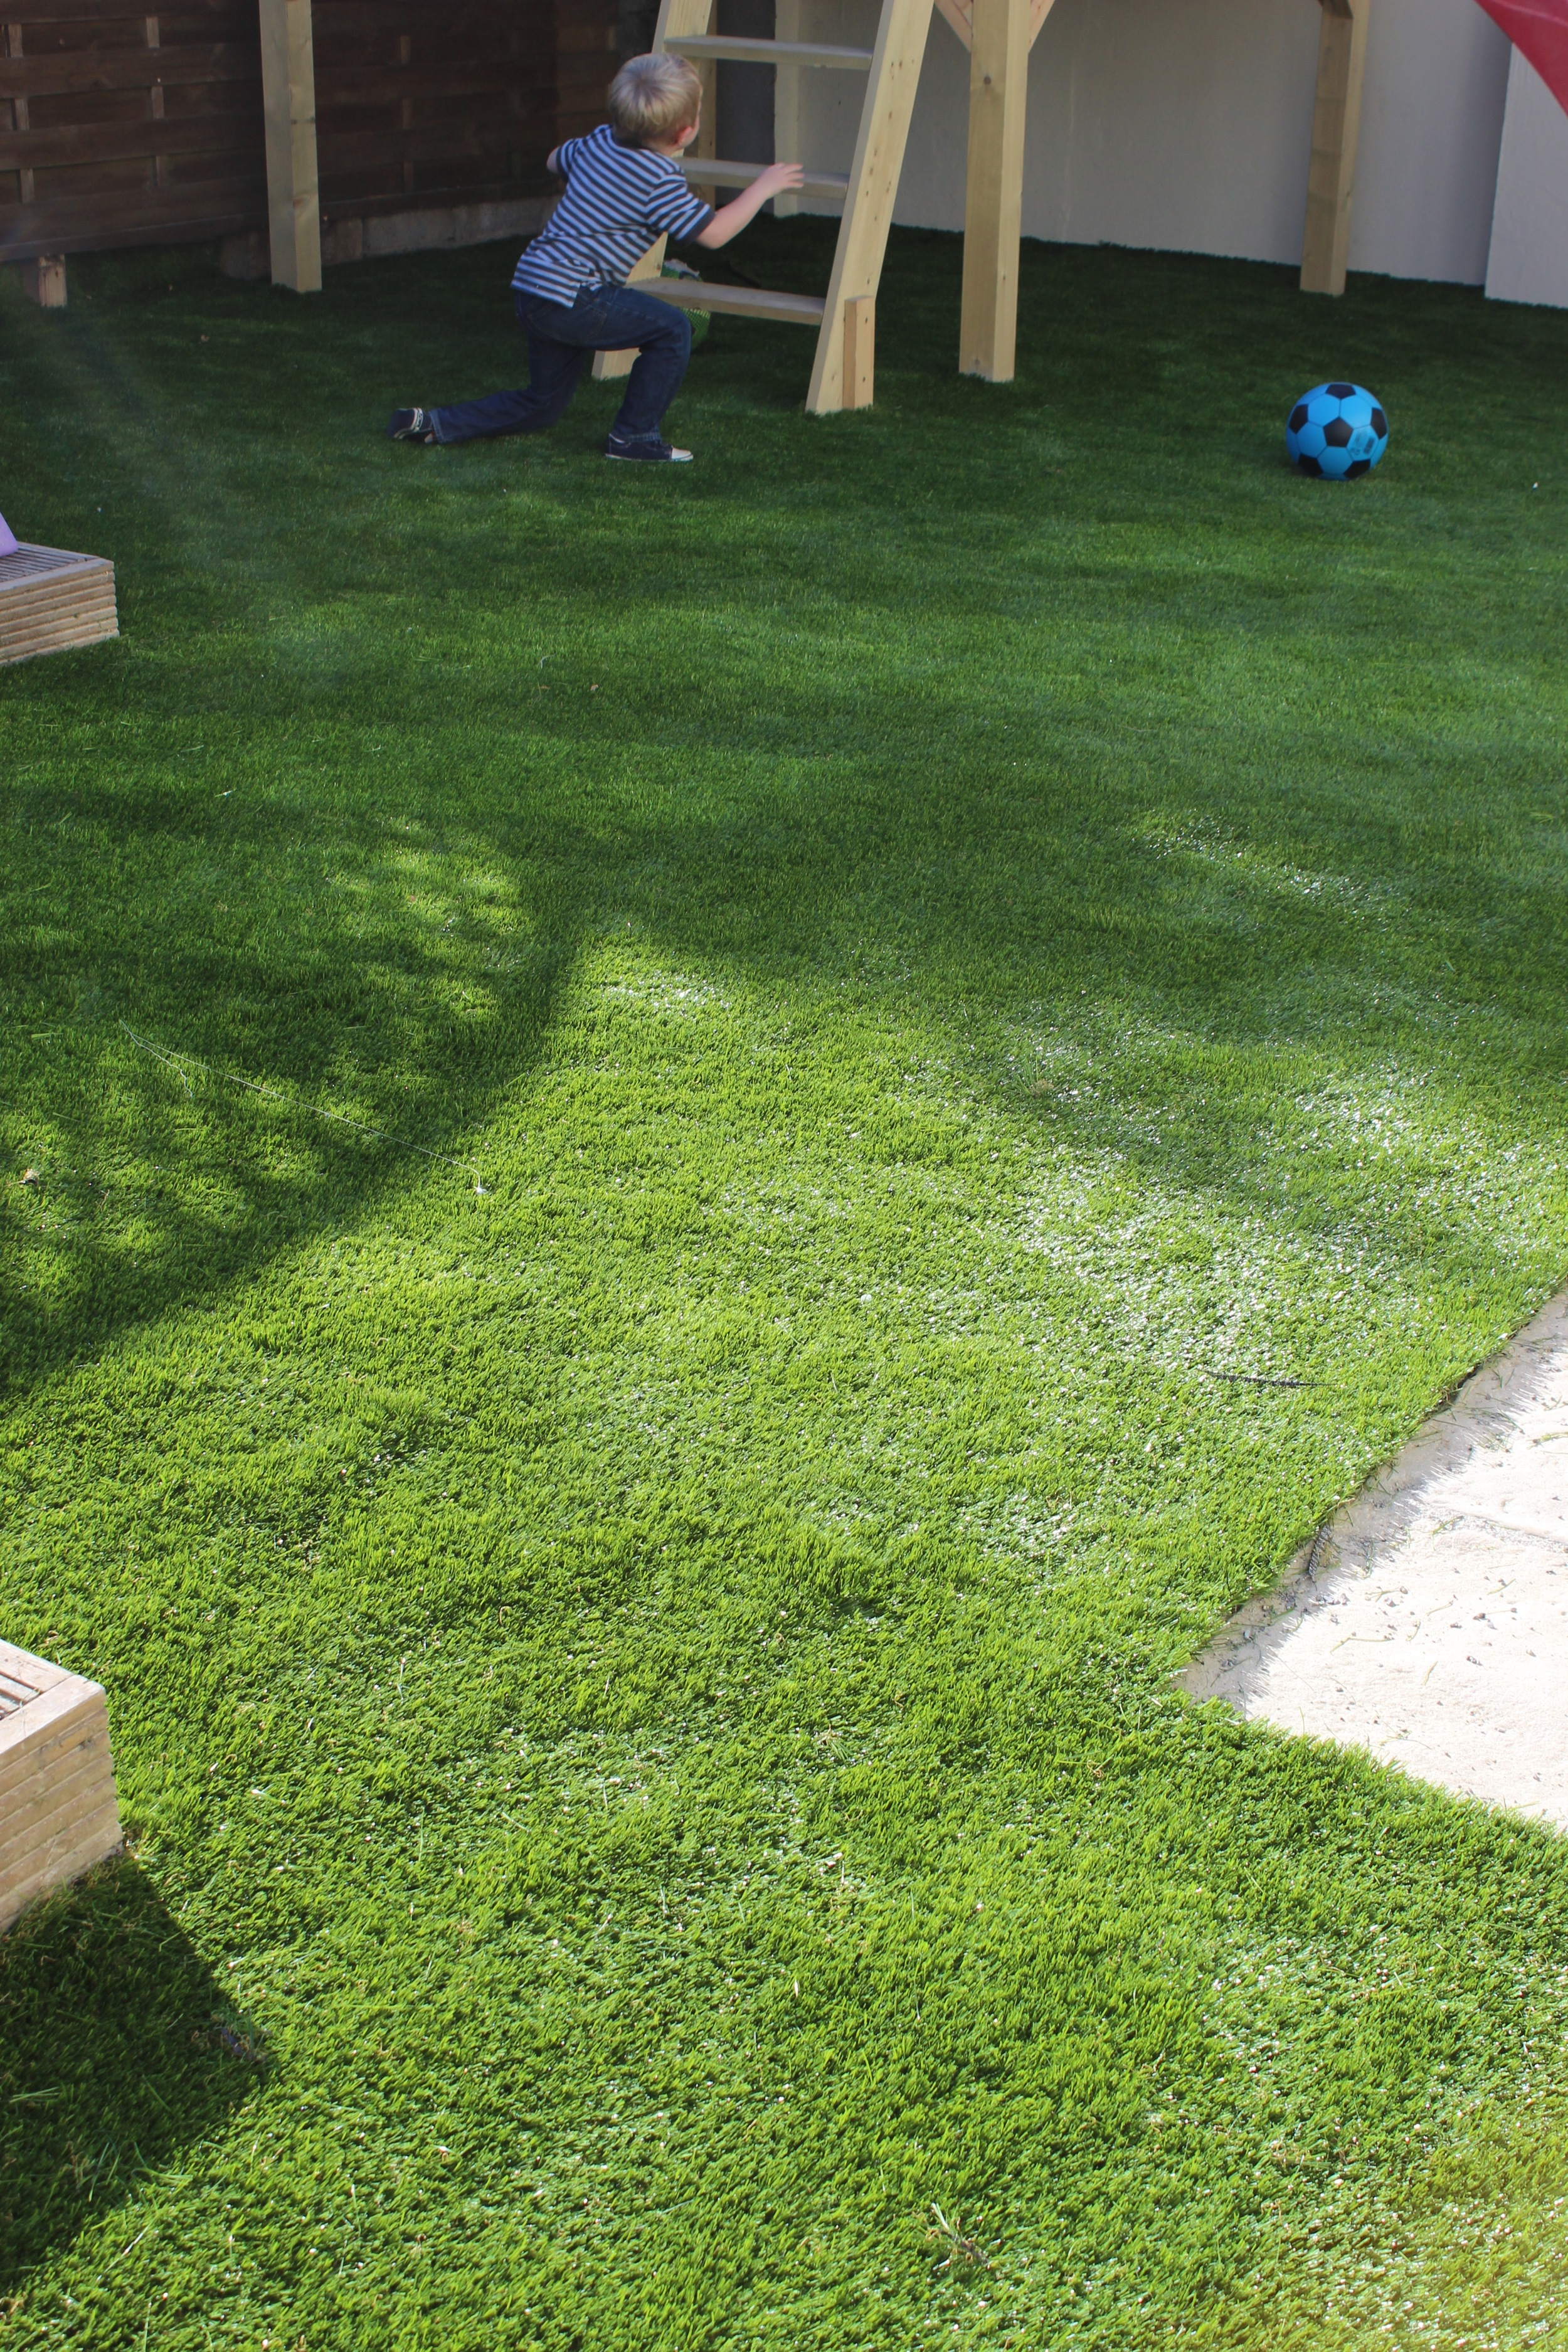 kids playing safely on astroturf